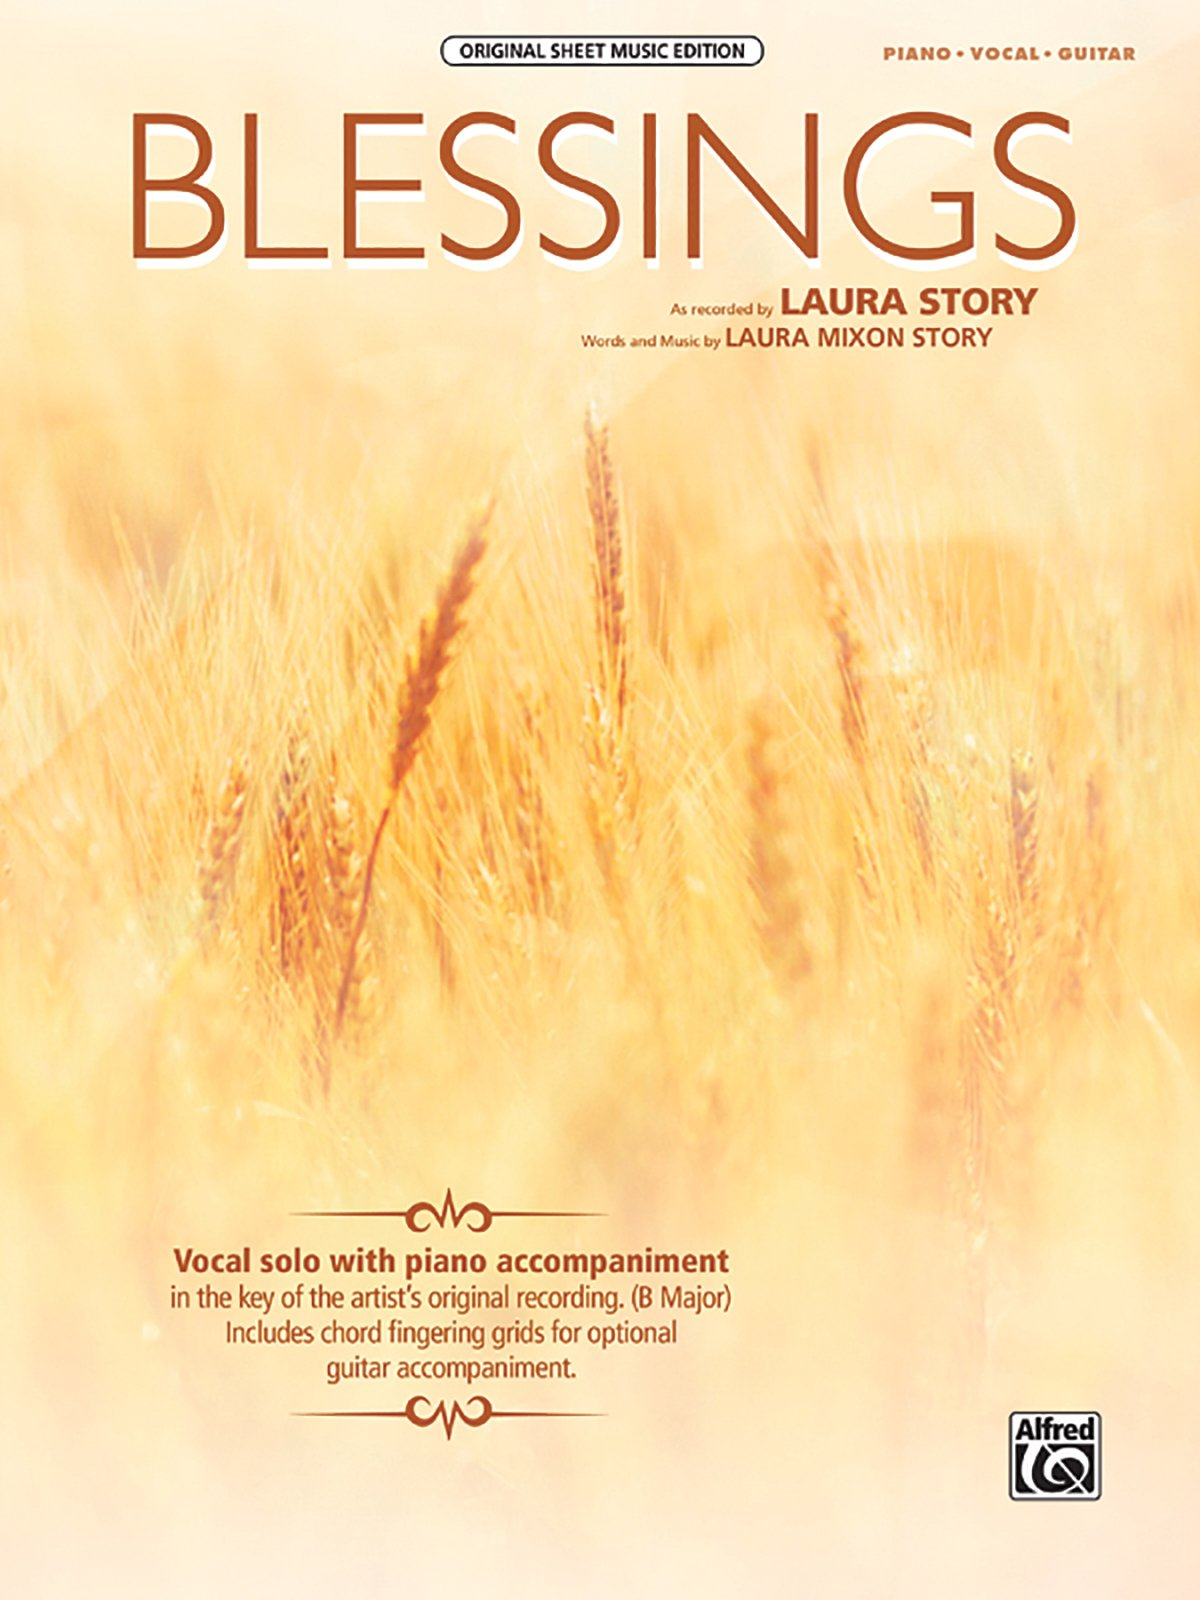 Blessings Pianovocalguitar Sheet Original Sheet Music Edition